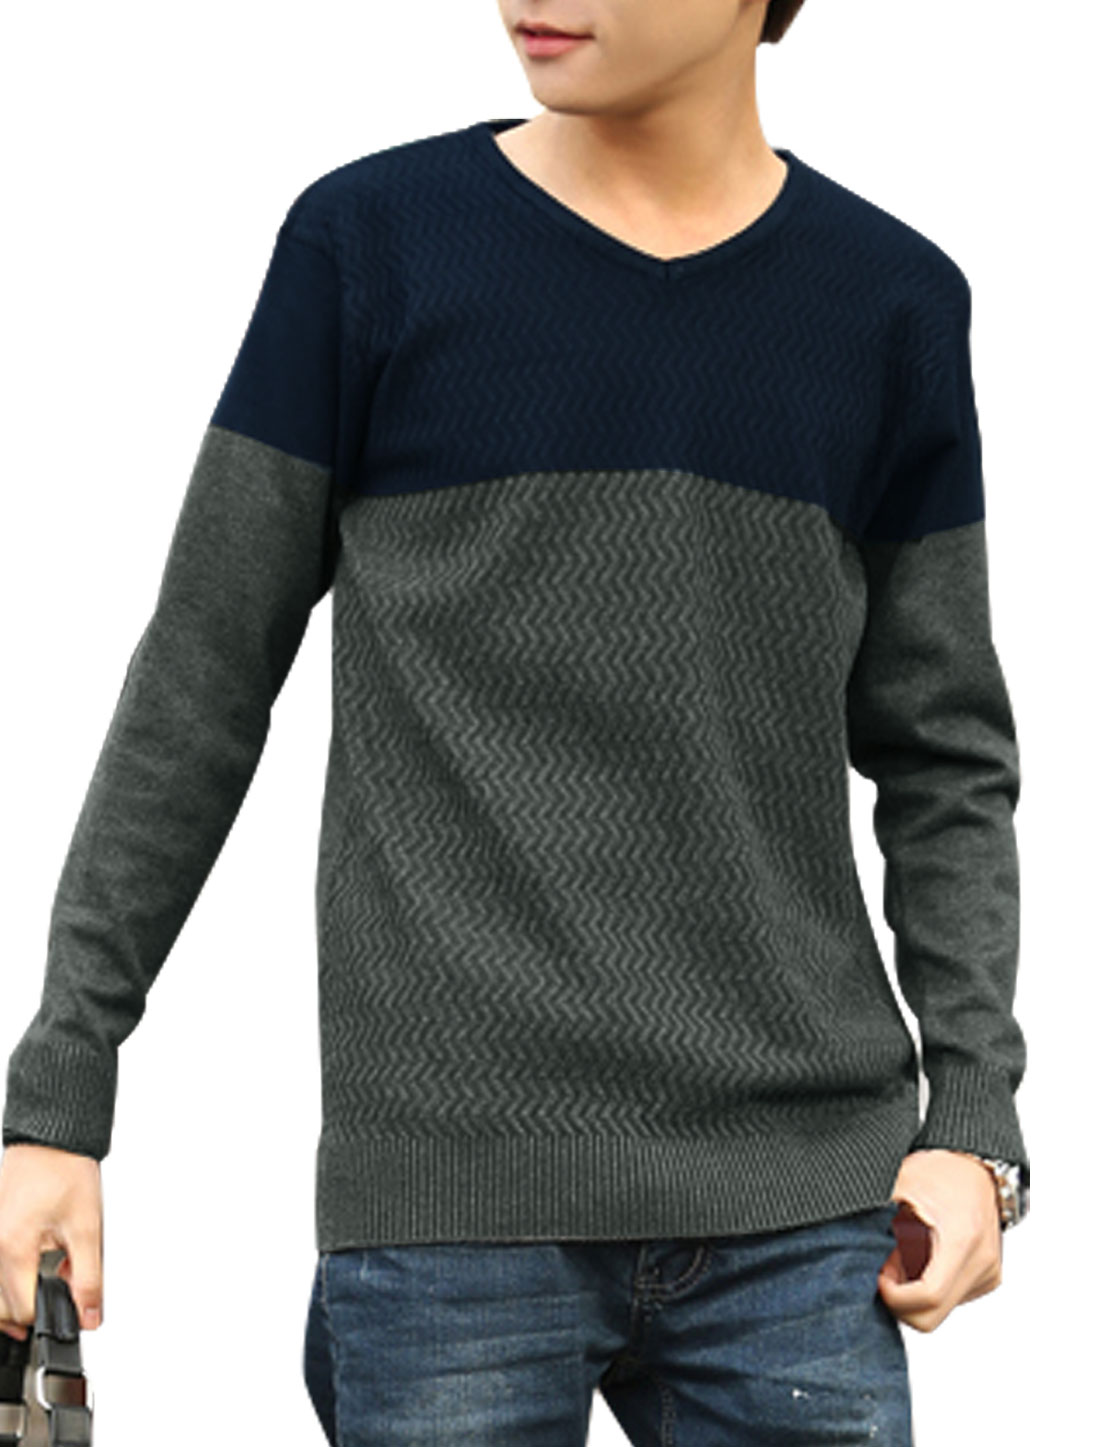 Men V Neck Contrast Color Long Sleeve Casual Knit Shirt Navy Blue Gray S